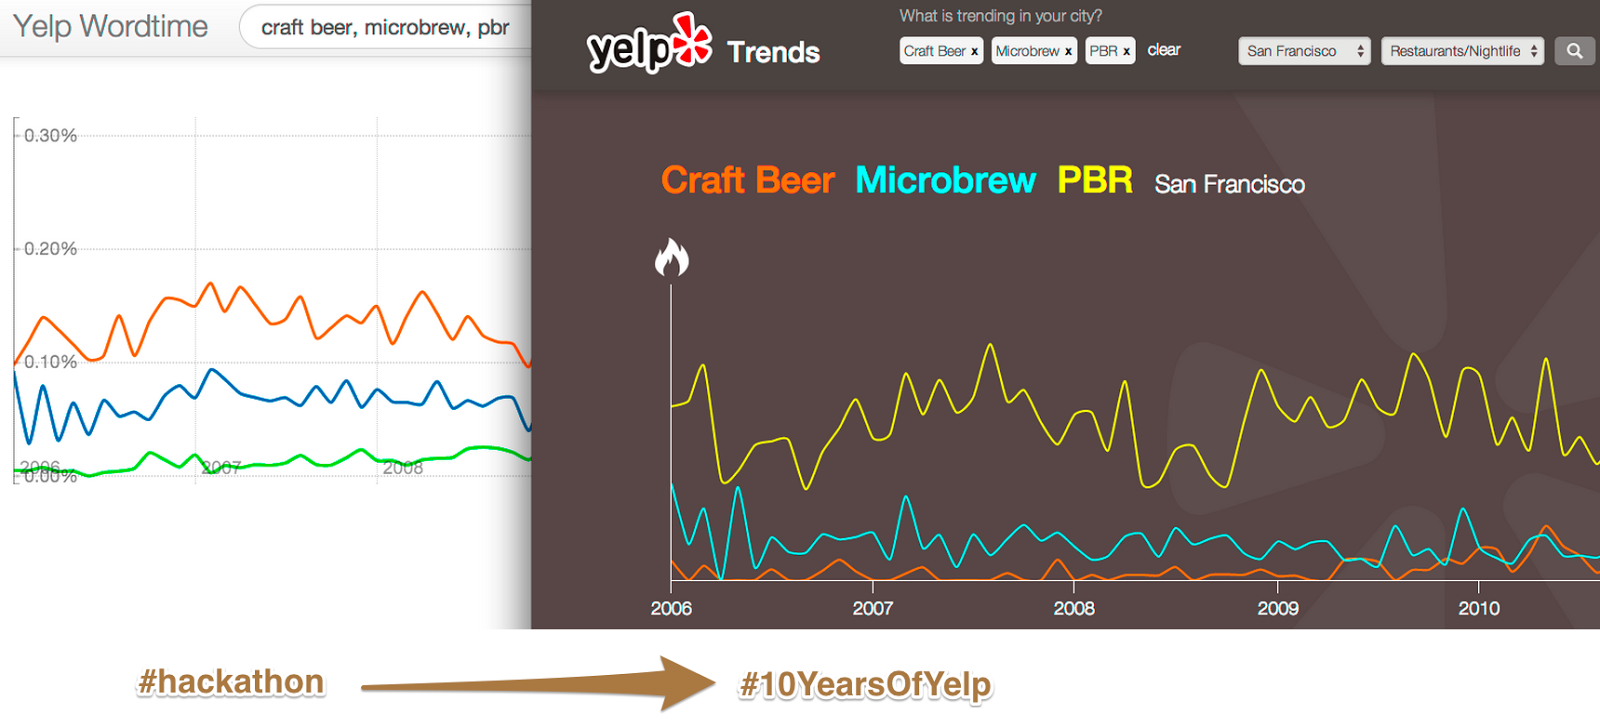 Meet Yelp Trends: A Fun Way to Visualize Trends From Millions of